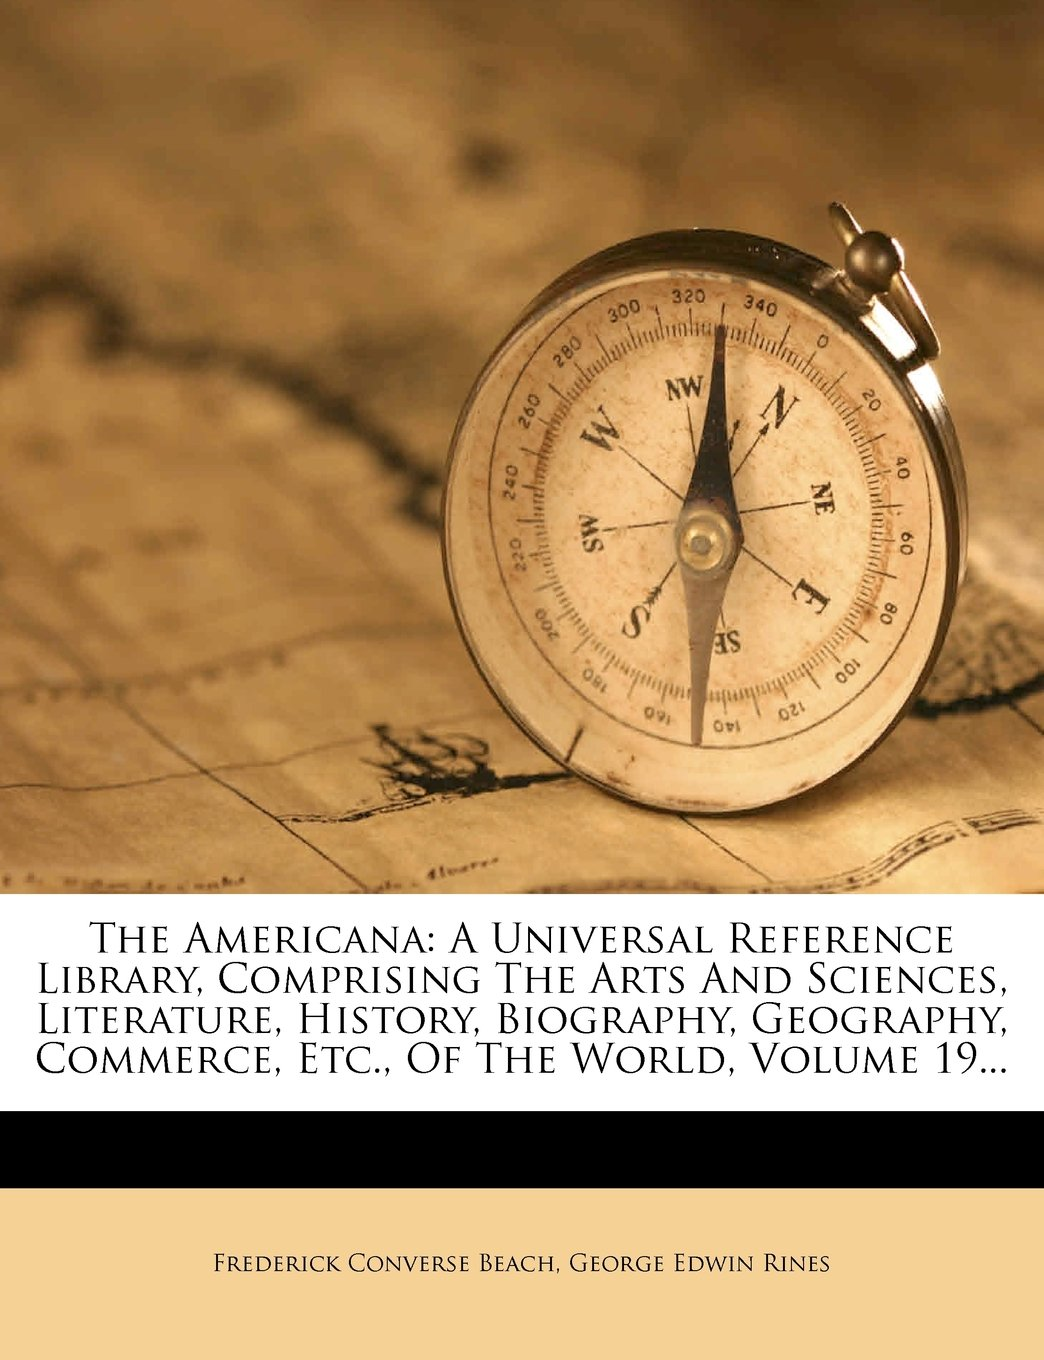 The Americana: A Universal Reference Library, Comprising The Arts And Sciences, Literature, History, Biography, Geography, Commerce, Etc., Of The World, Volume 19... PDF